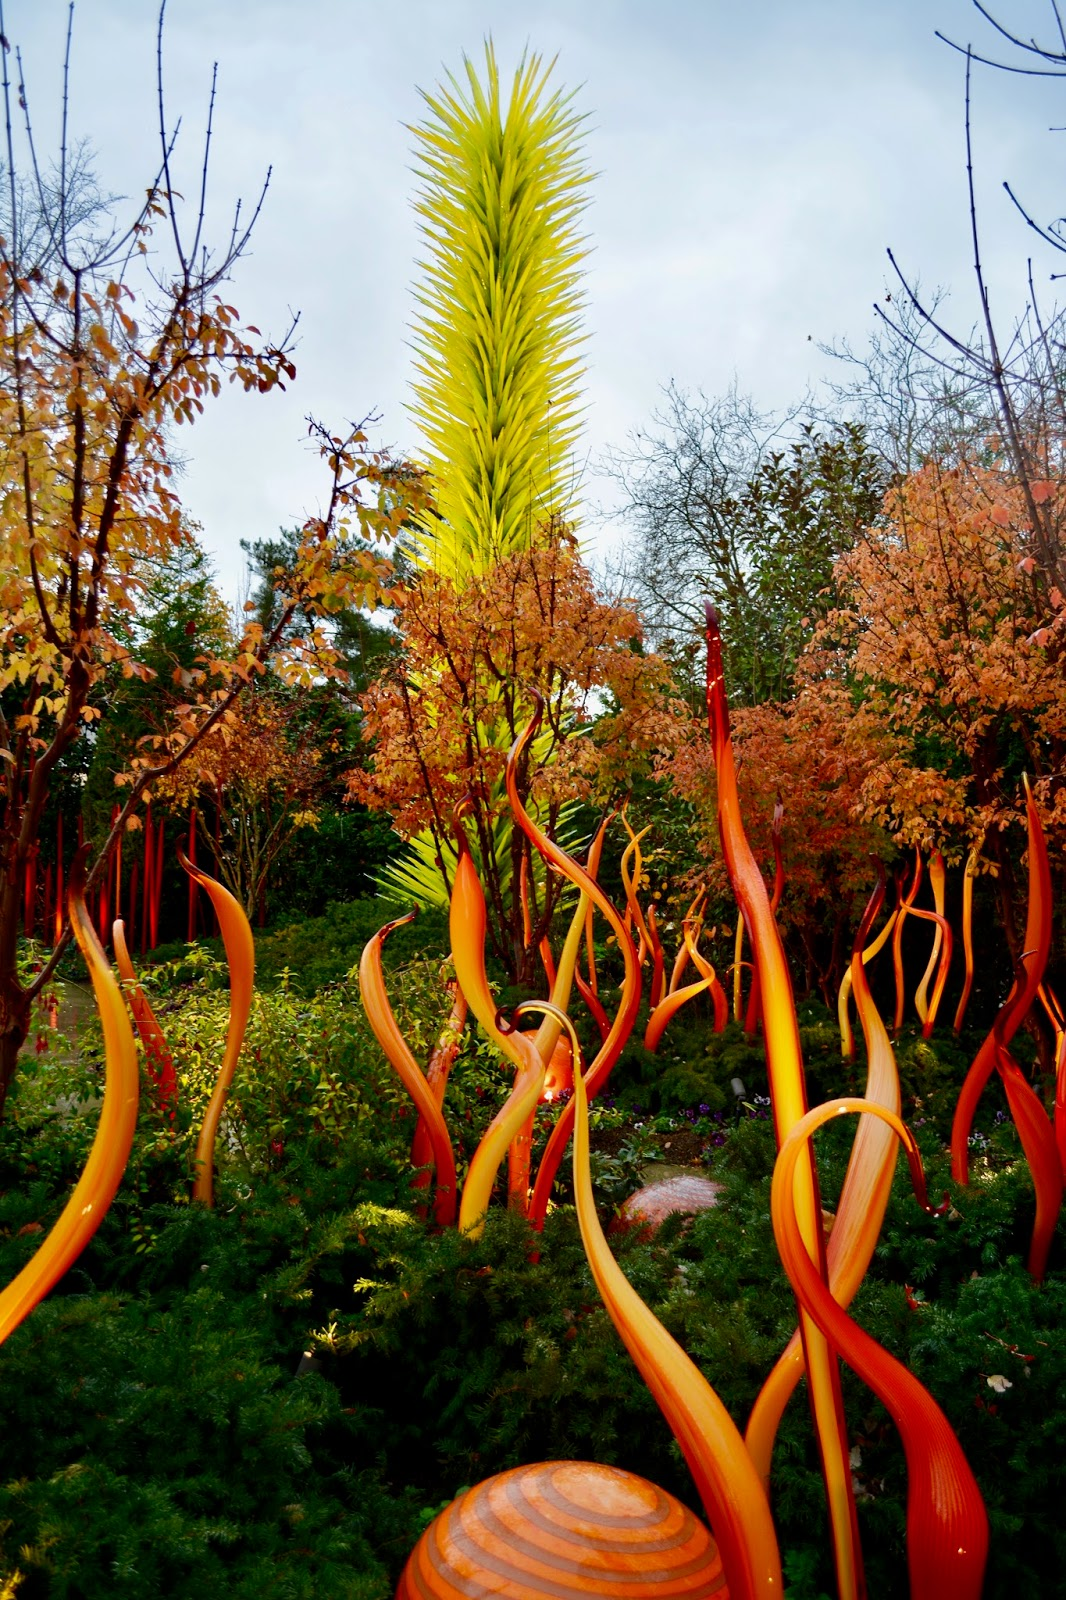 Chihuly Garden and Glass | Air Capital Chronicles